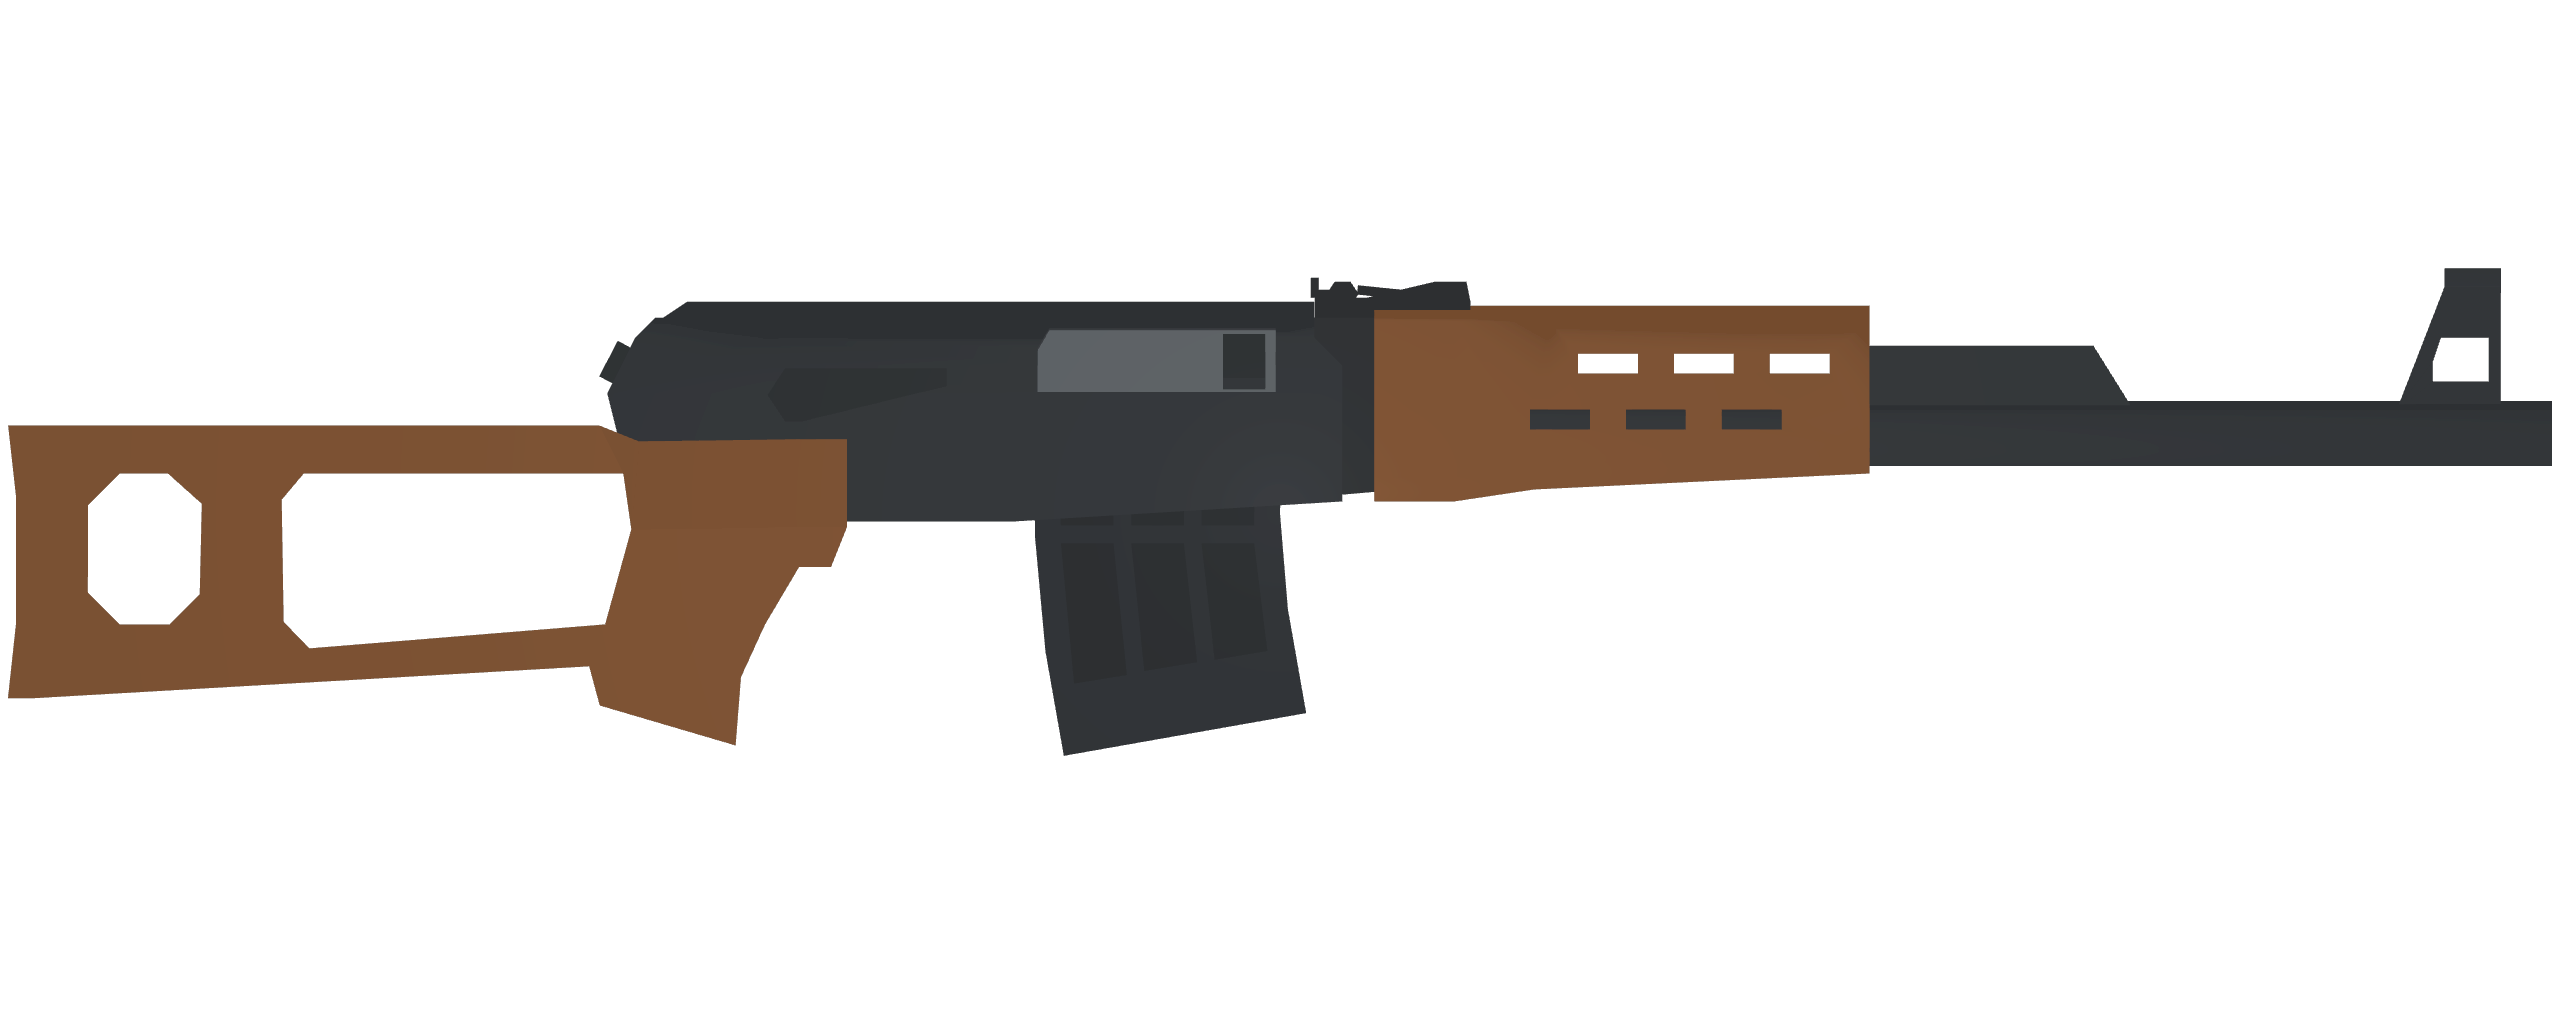 Unturned - All Weapons ID's for Uncreated Warfare Mods - Russian Weapons - 3D4BDE5